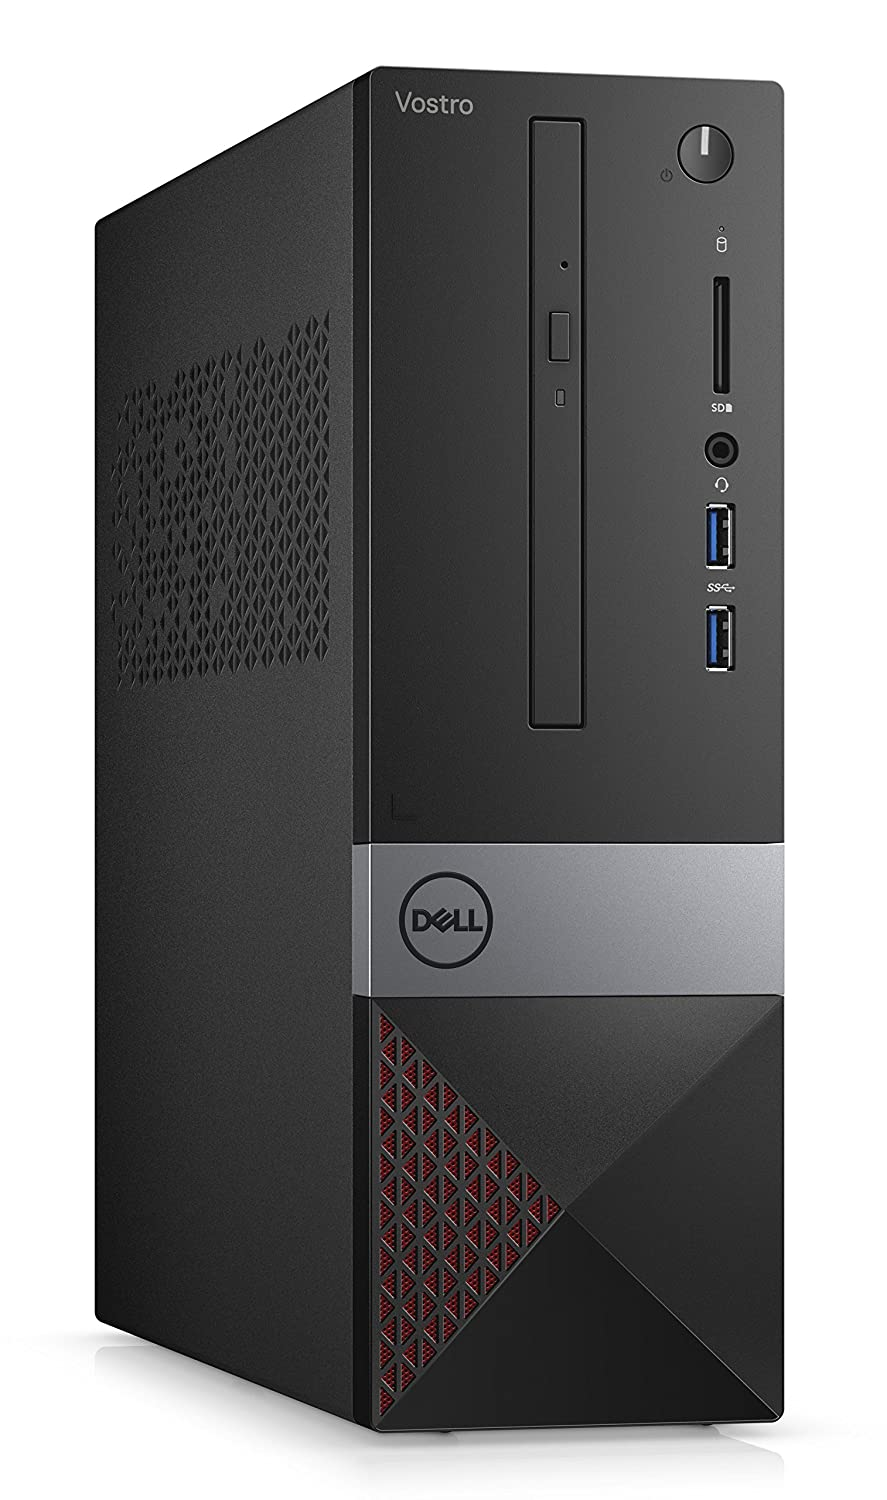 Incredible Dell Vostro 3470 2018 Sff Desktop Core I3 8Th Gen 4 Gb Ddr4 1 Tb Windows 10 Home Y3Xyv Download Free Architecture Designs Osuribritishbridgeorg